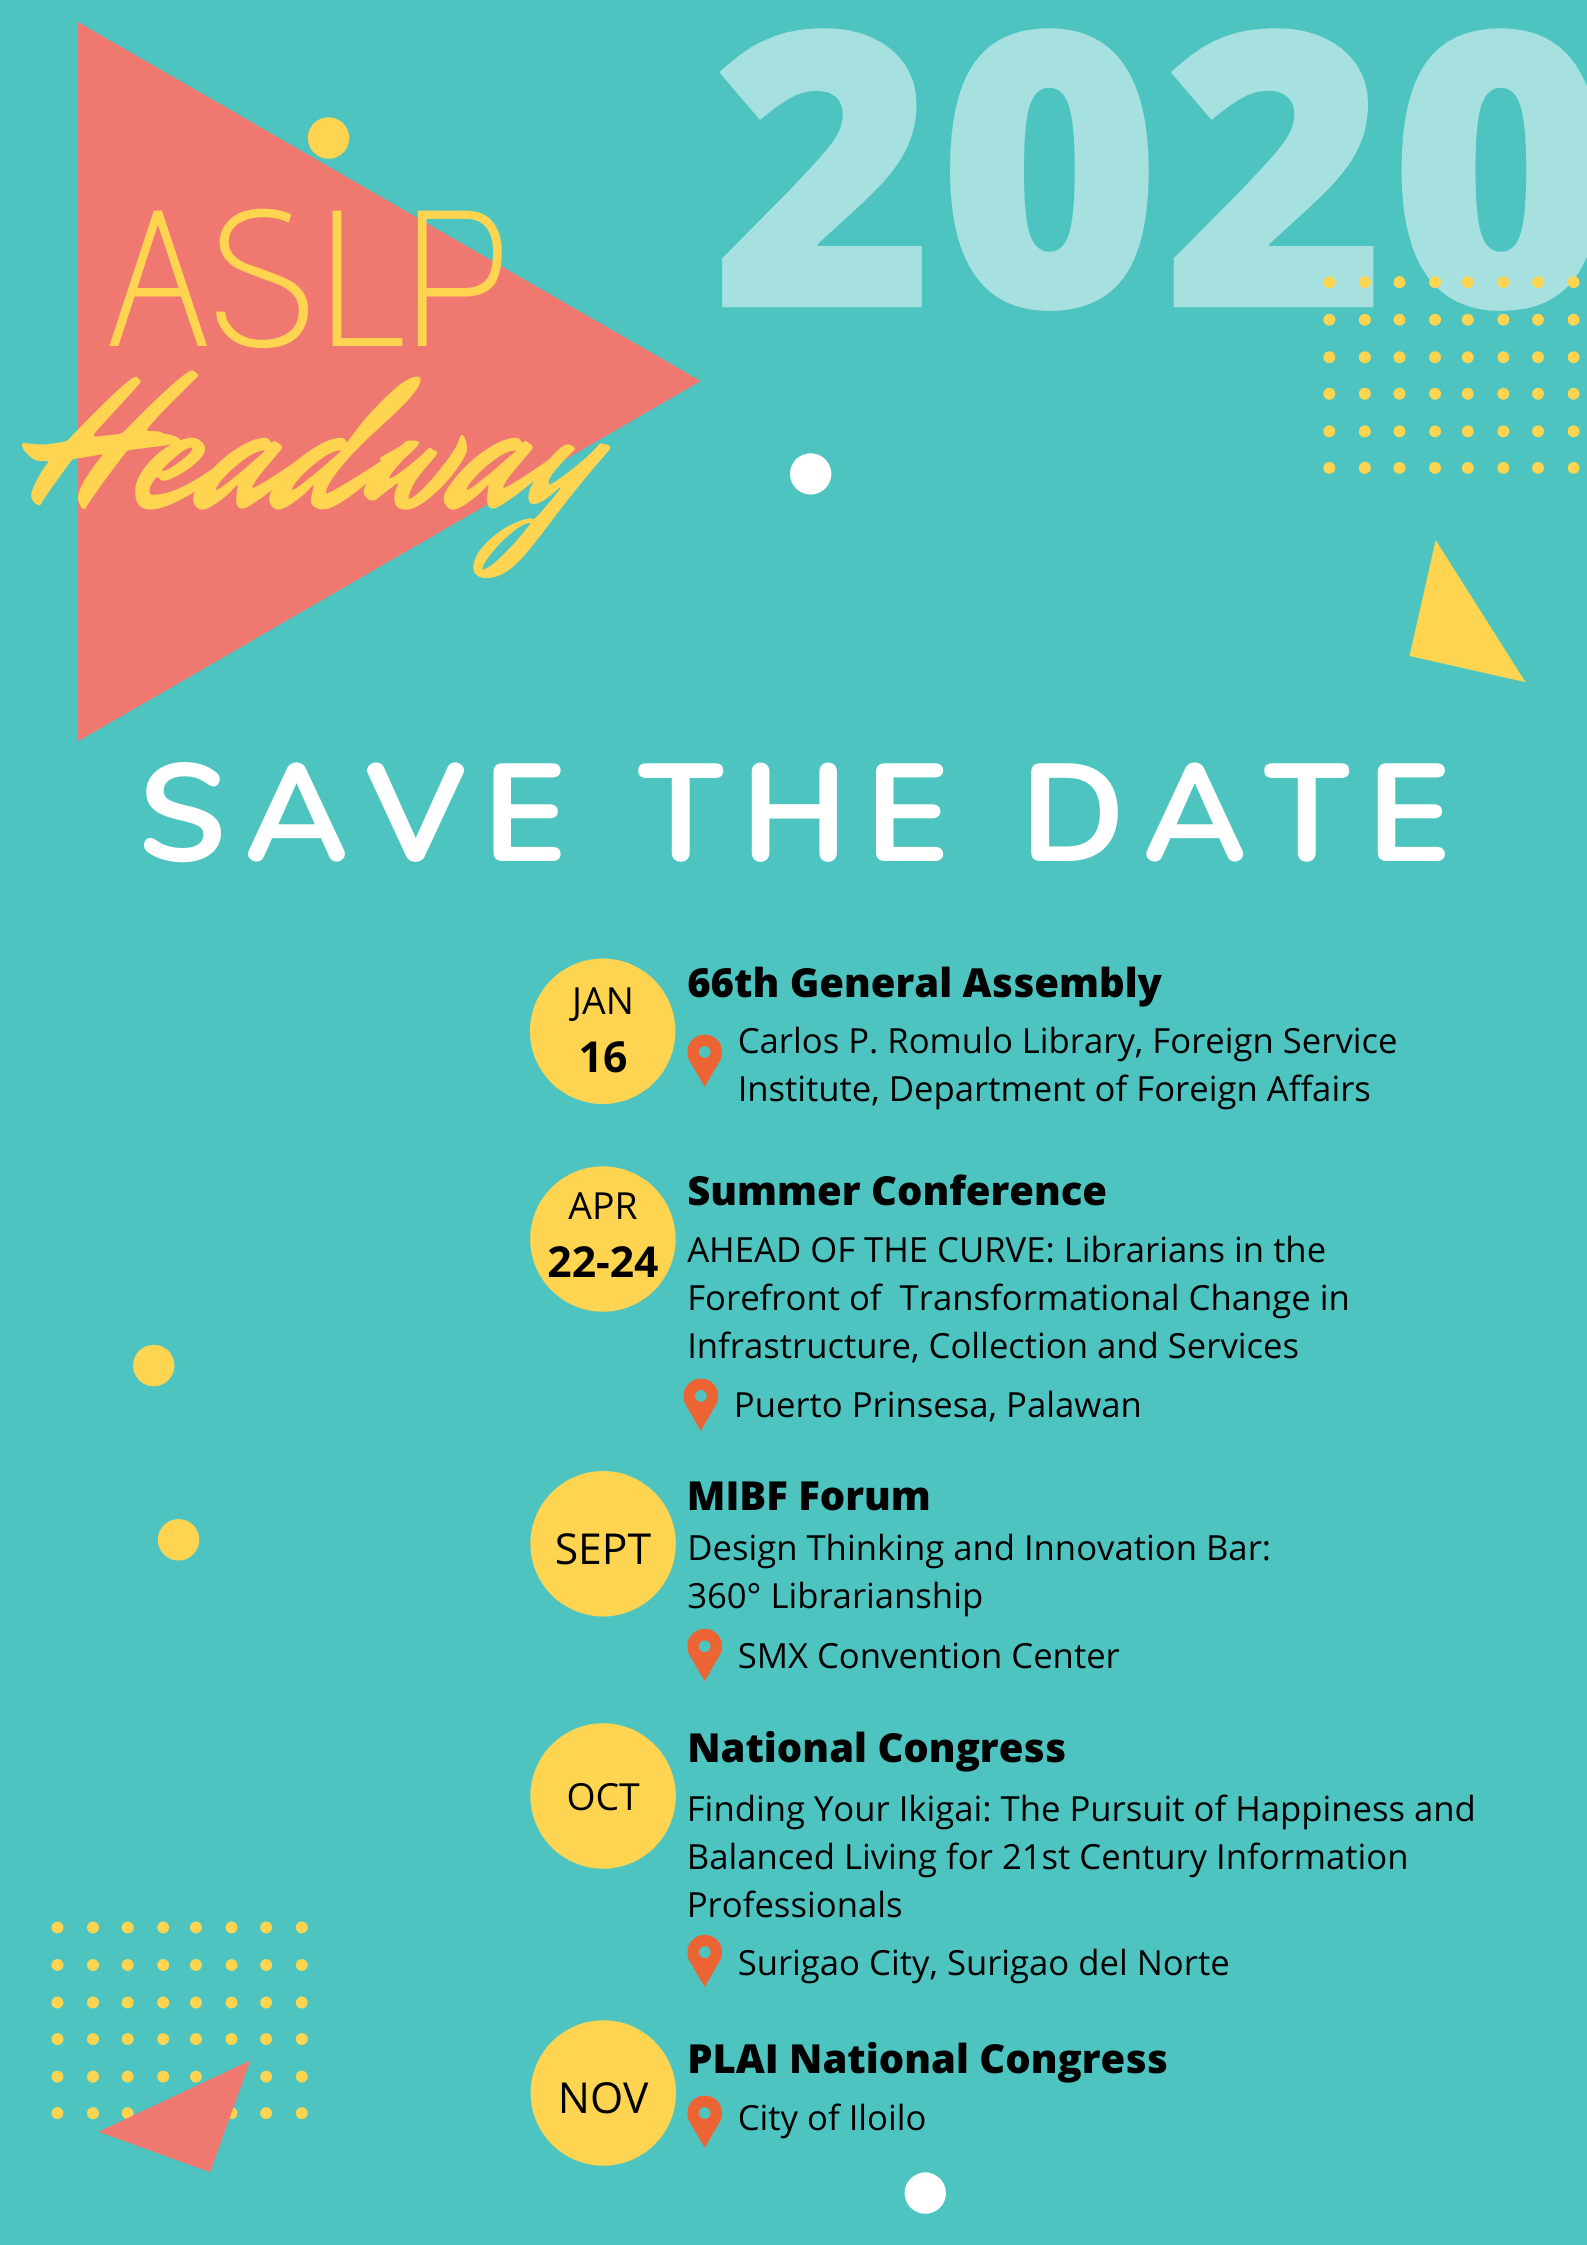 2020-aslp-save-the-date-headway